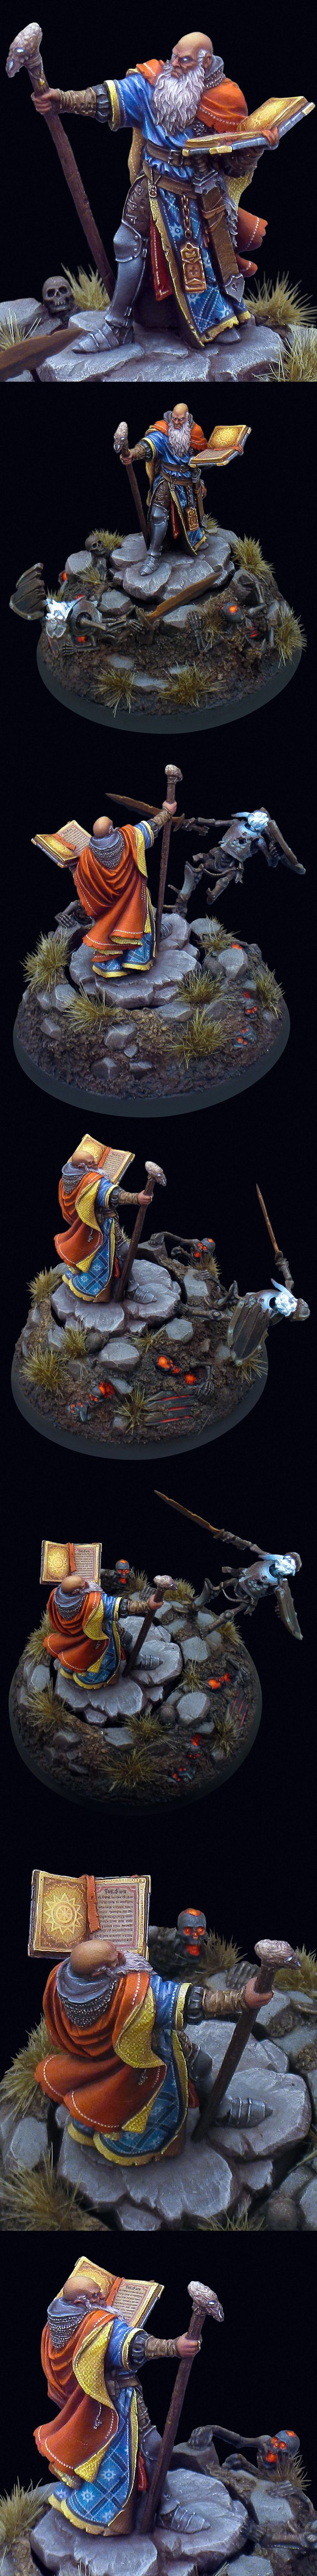 Sorn's Mierce Miniatures Painted by The Best Painters Out There - Page 8 - Forum - DakkaDakka | No assembly required.